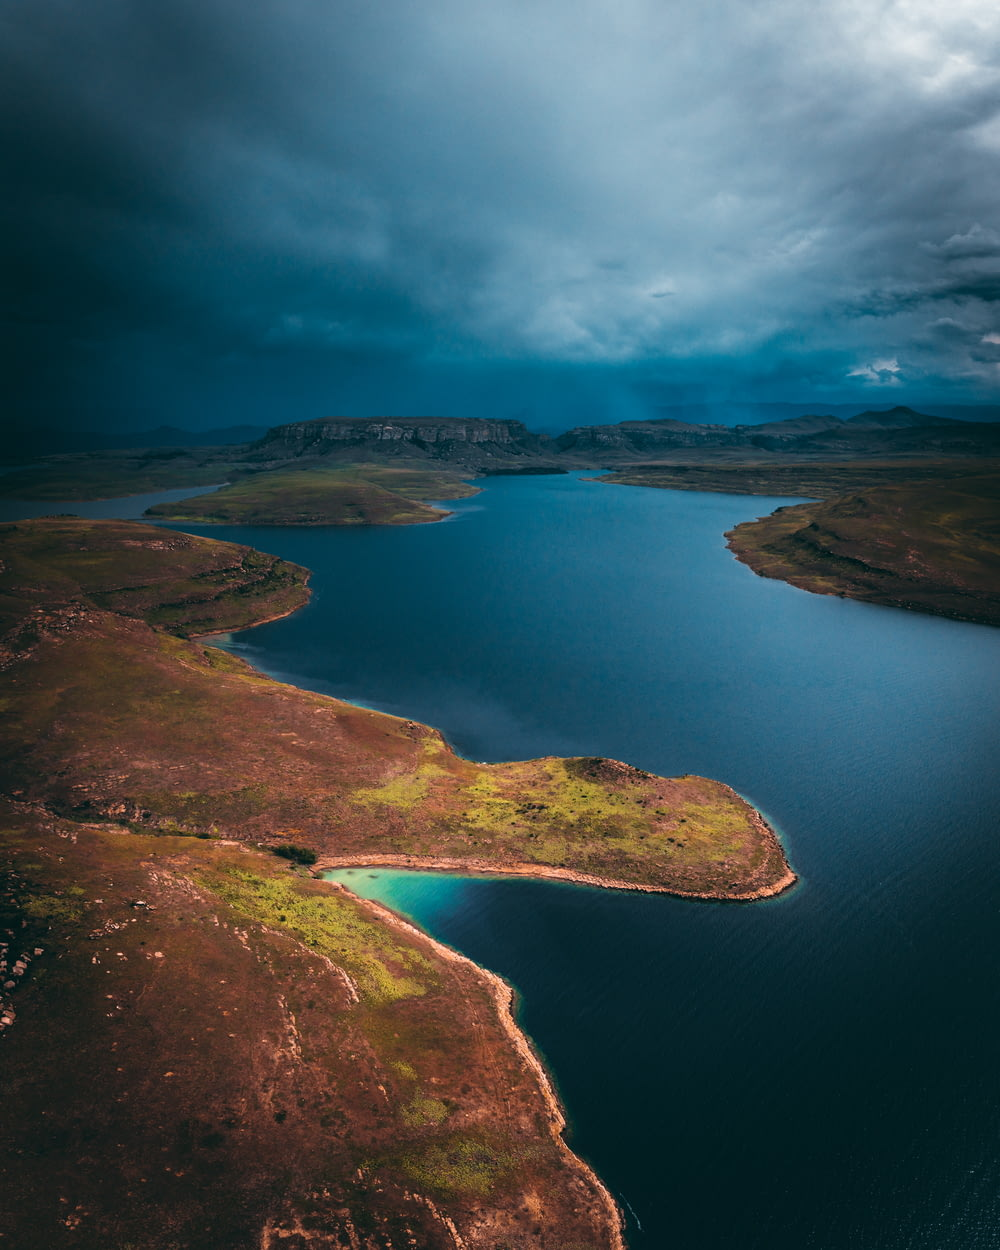 aerial photography of body of water with brown and green field under dramatic clouds